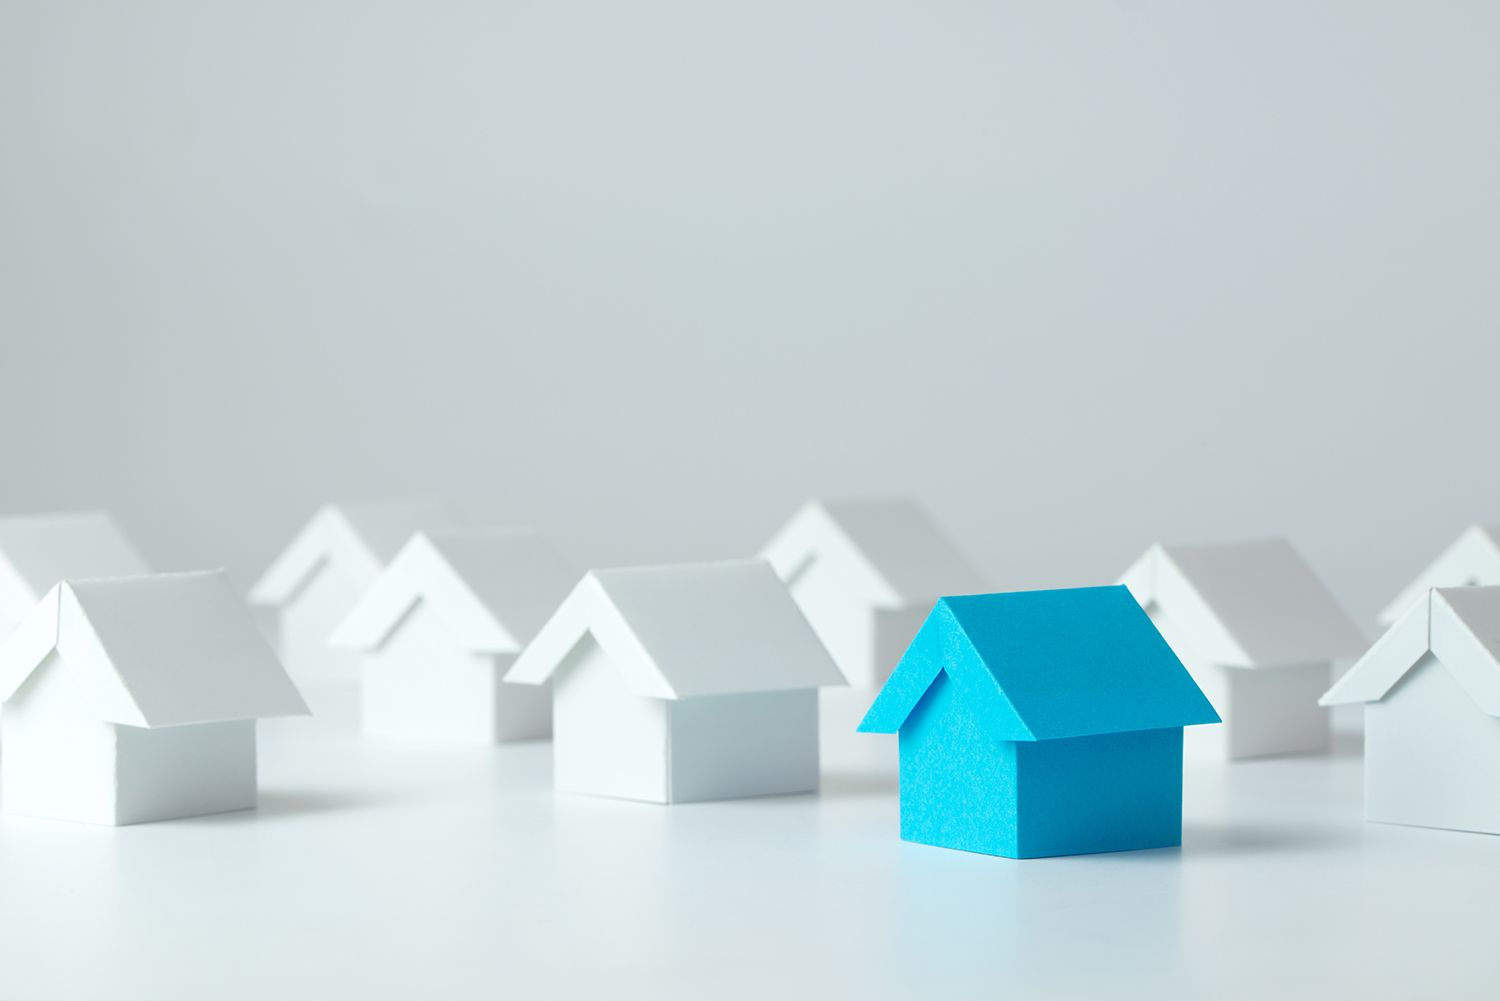 €�if Looking To Buy A Leasehold Property, Ask What Is The Service Charge,  What Does It Cover, And How Will Large Maintenance And Repair Works Be Paid?